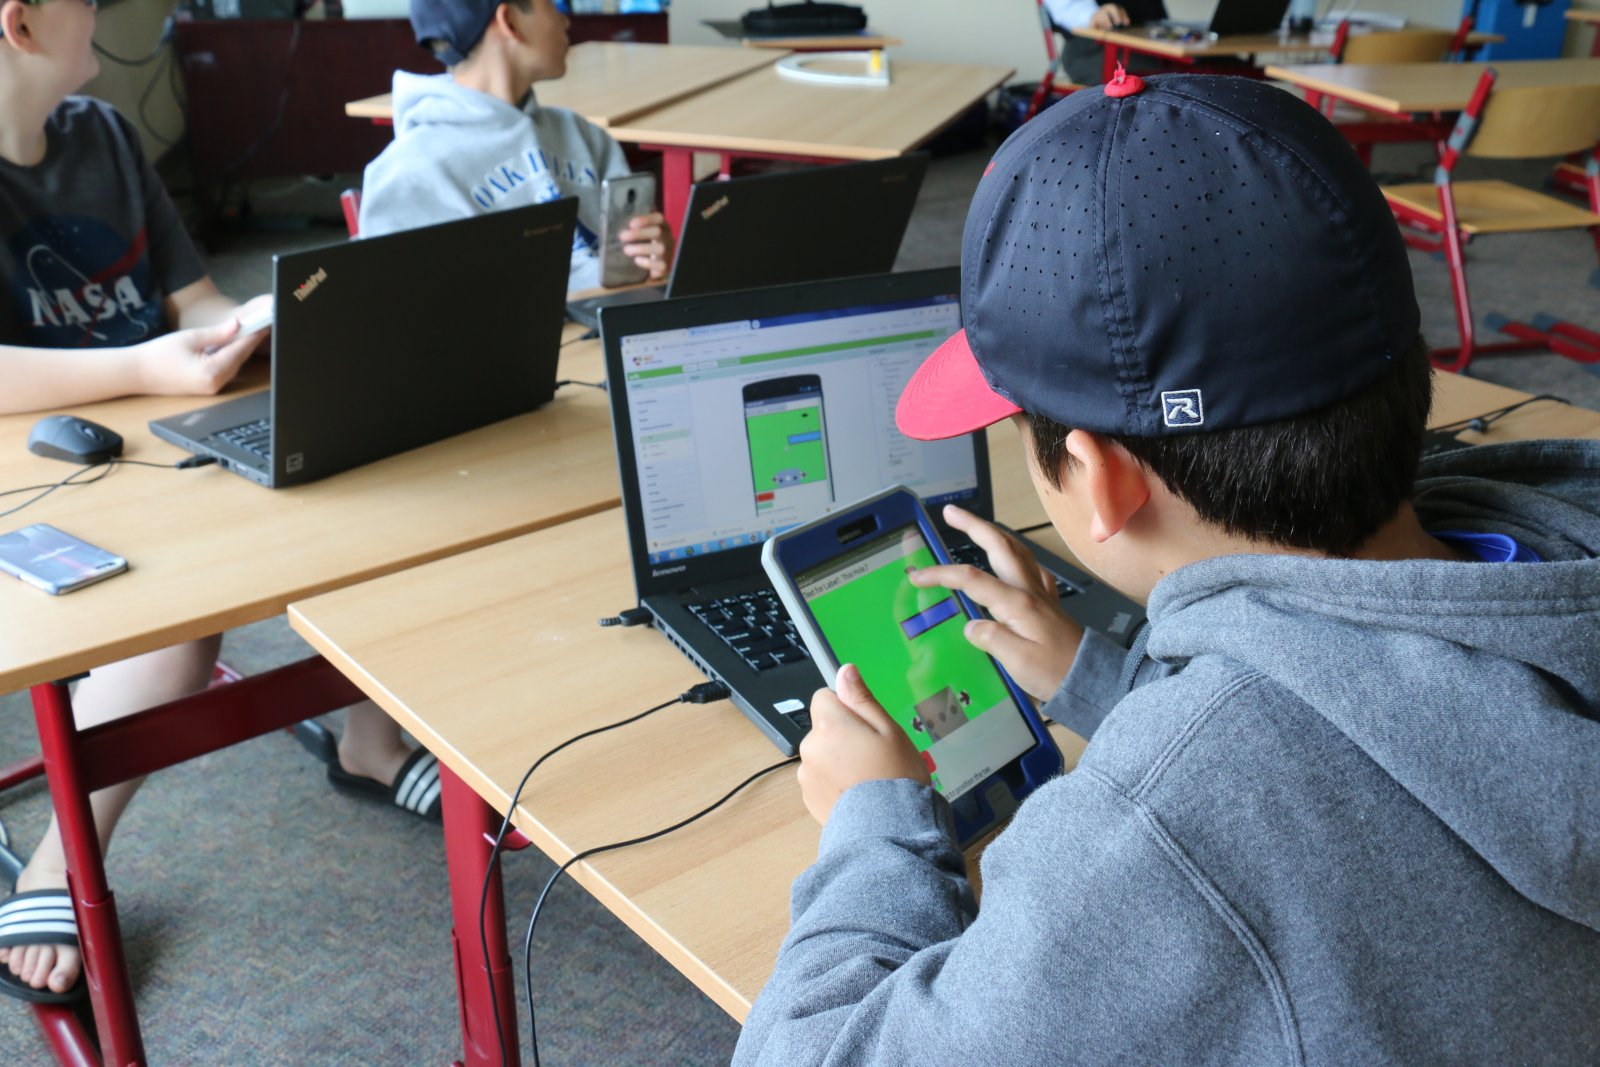 Student working on designing an app in a Saturday Academy class